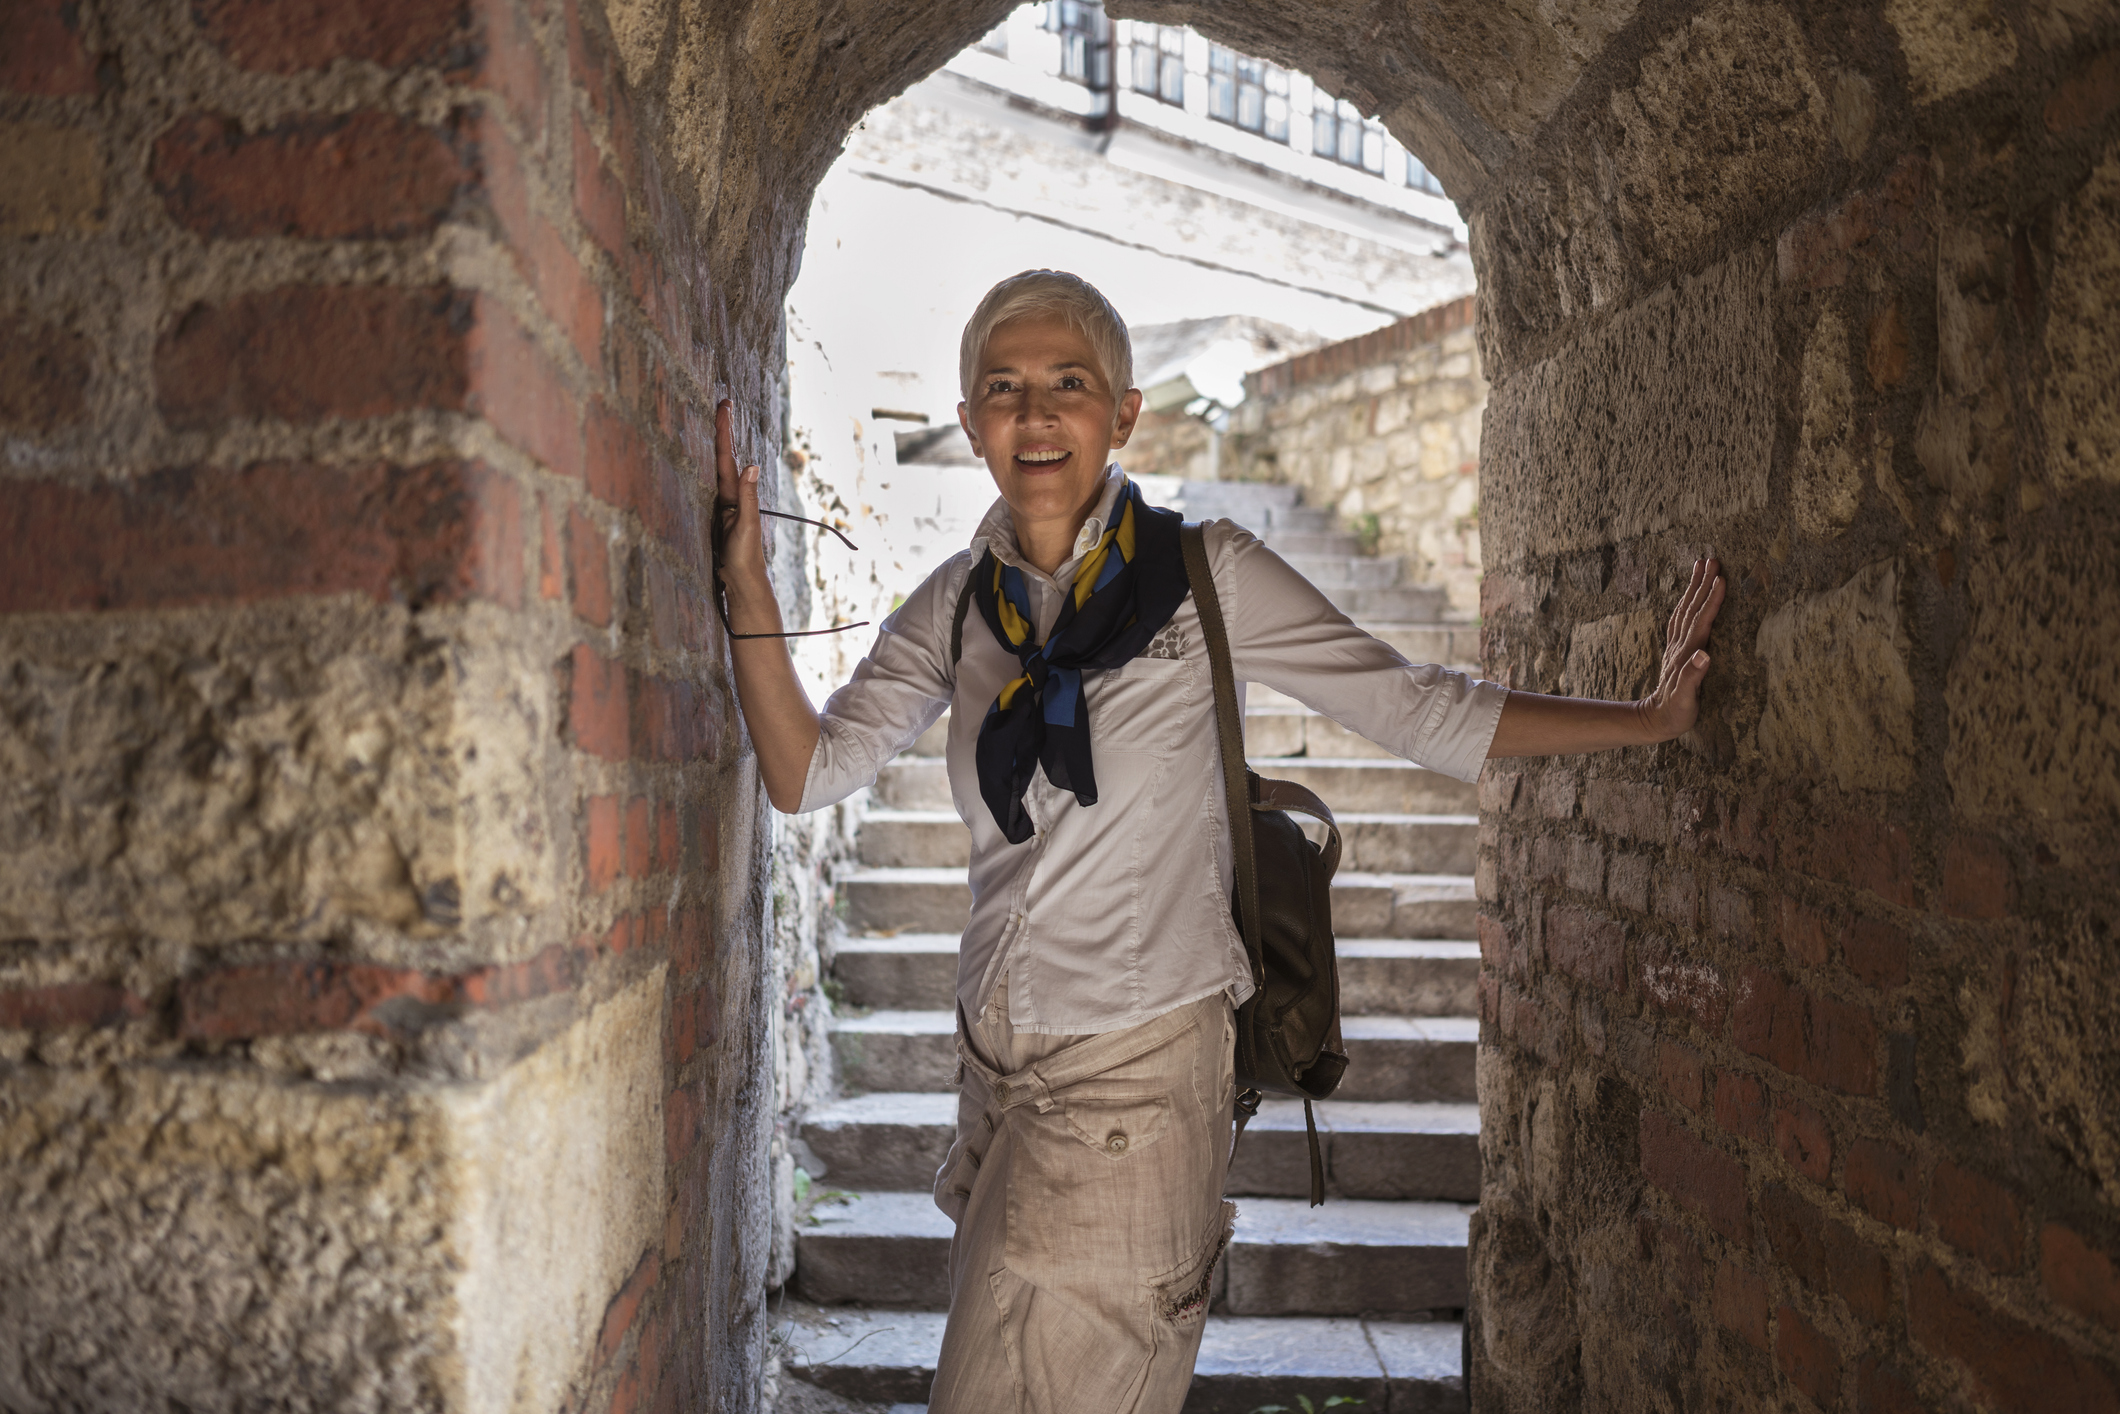 Woman explores old archway